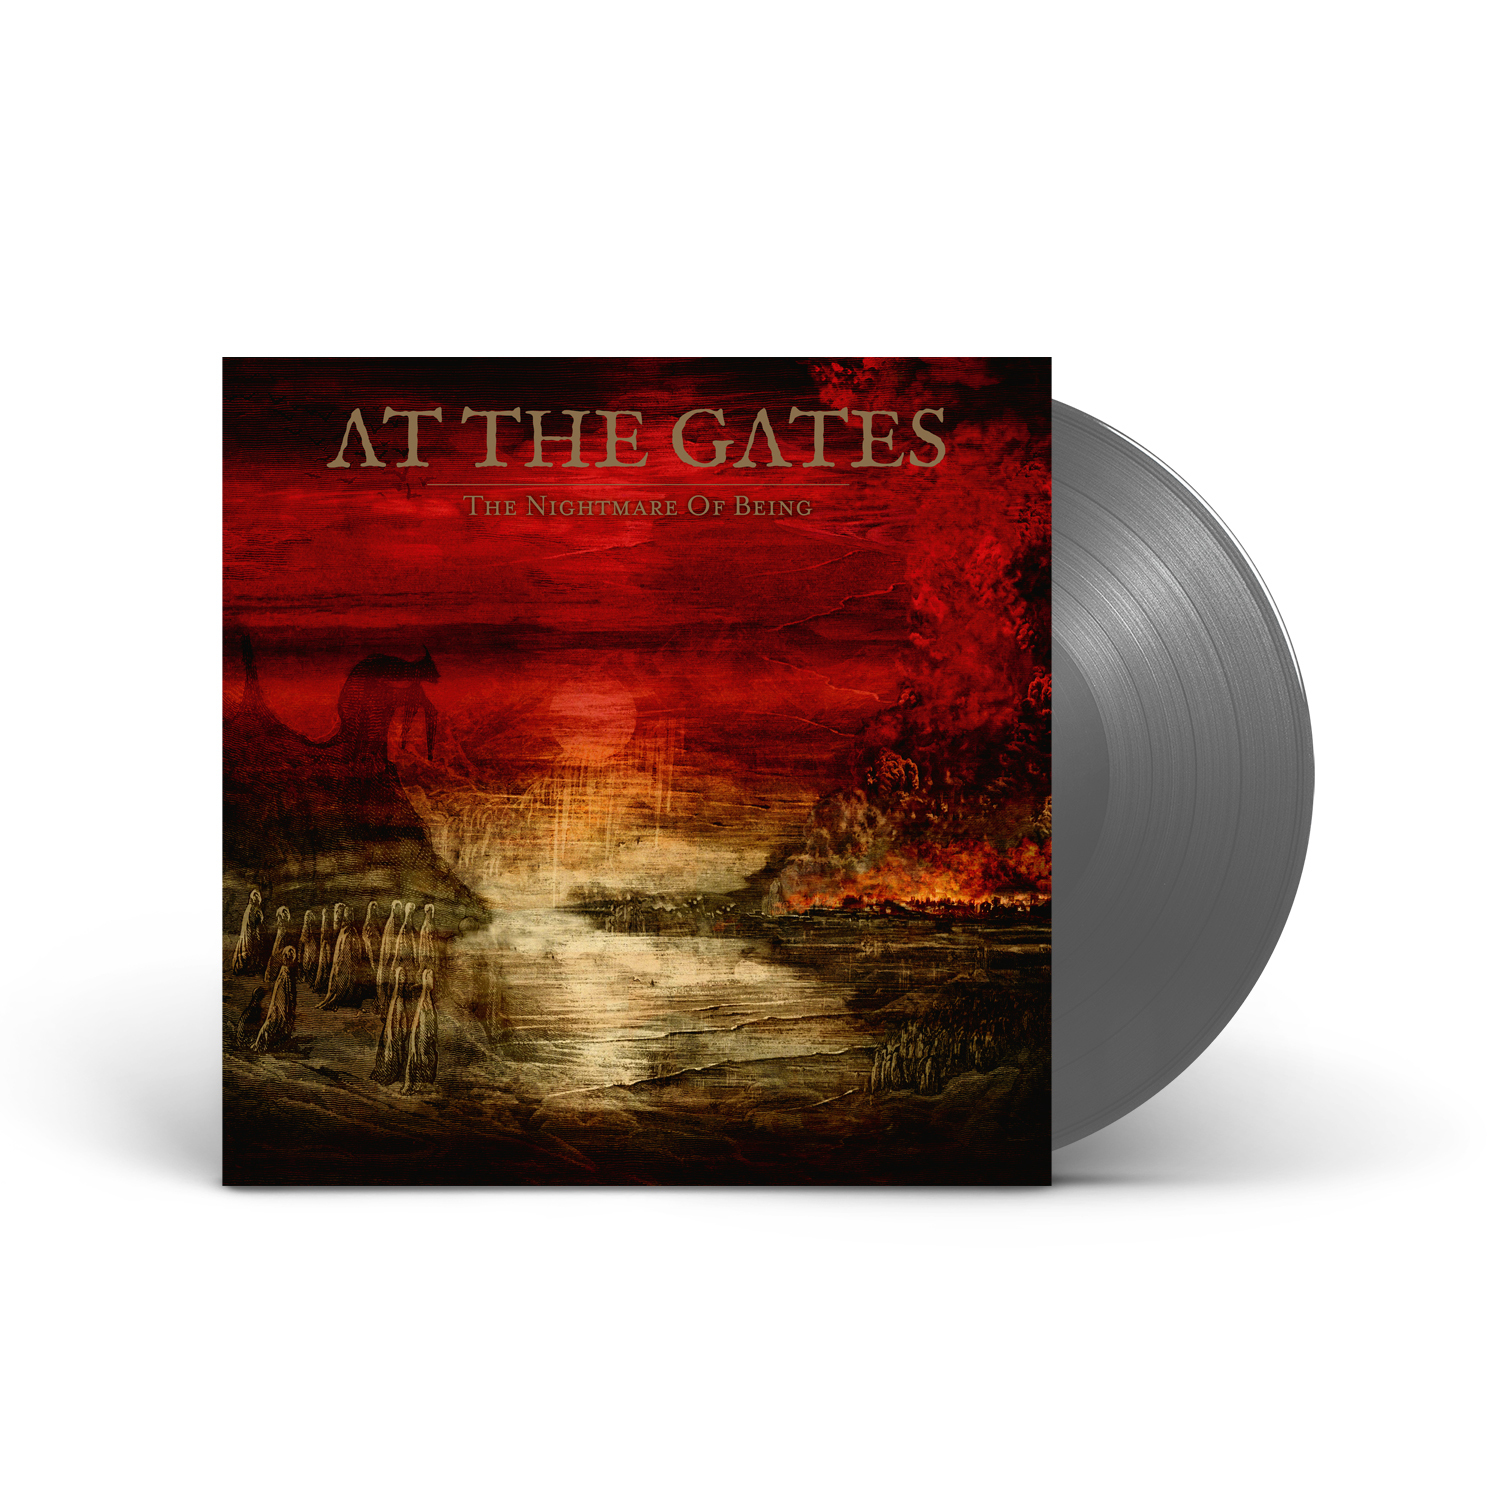 At The Gates - The Nightmare of Being Black Ice Vinyl LP + Digital Download